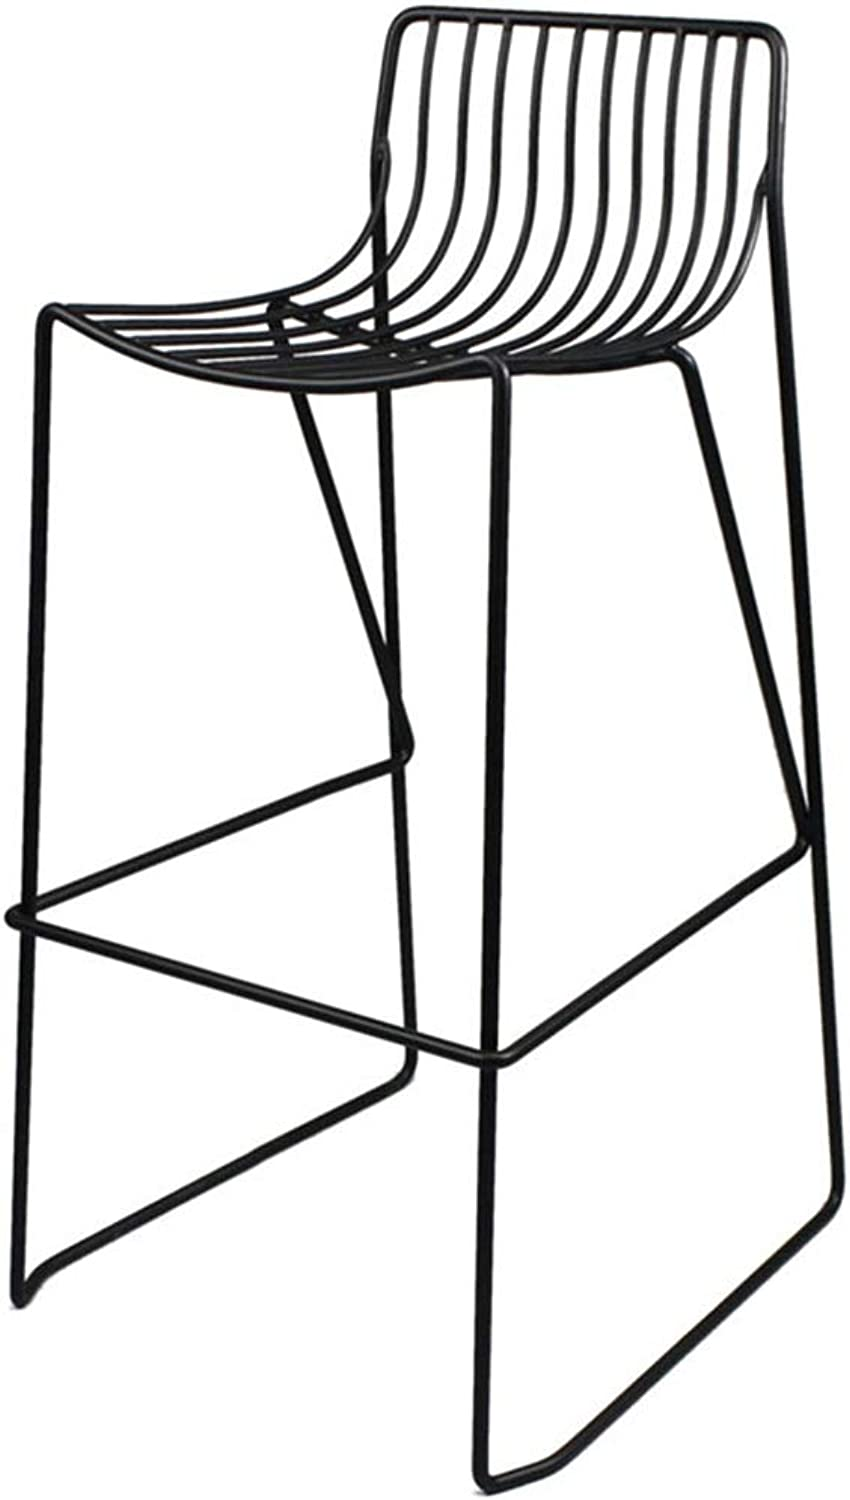 Bar Stools   Full Backed Dining Chair Backrest Stool, Bar Pub Dining Room Kitchen Home Furniture Indoor-Outdoor Stackable Stools Powder Coated Black Max. Load 440Lb